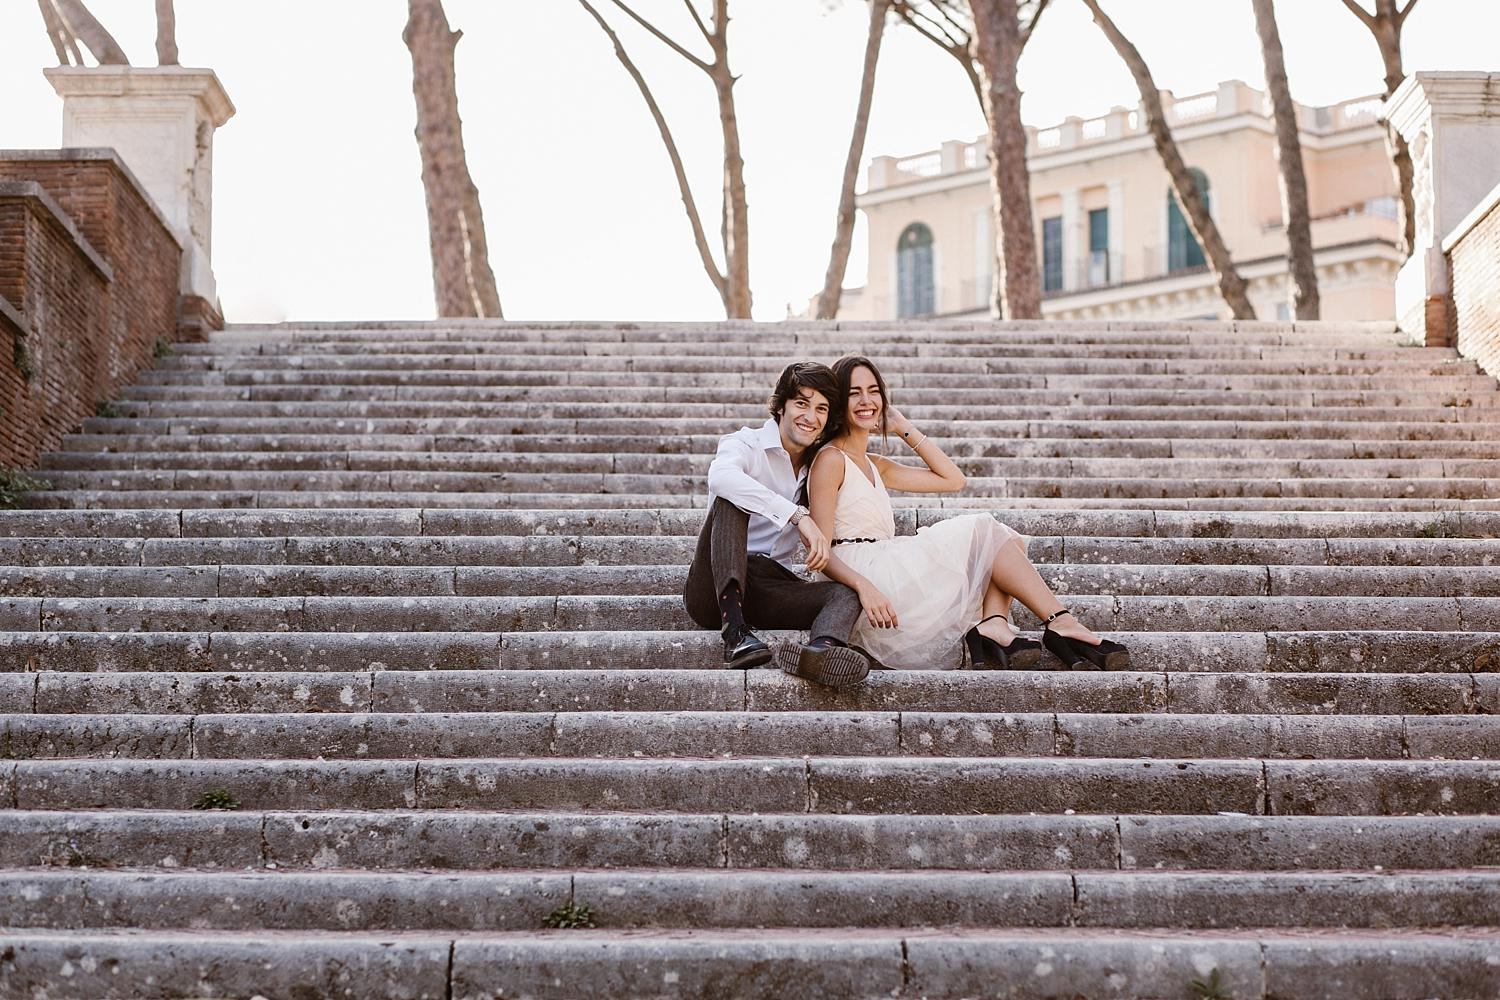 gs weddingphotographer rome 26 - Giulia & Simone - Elegant Couple Shooting in Rome